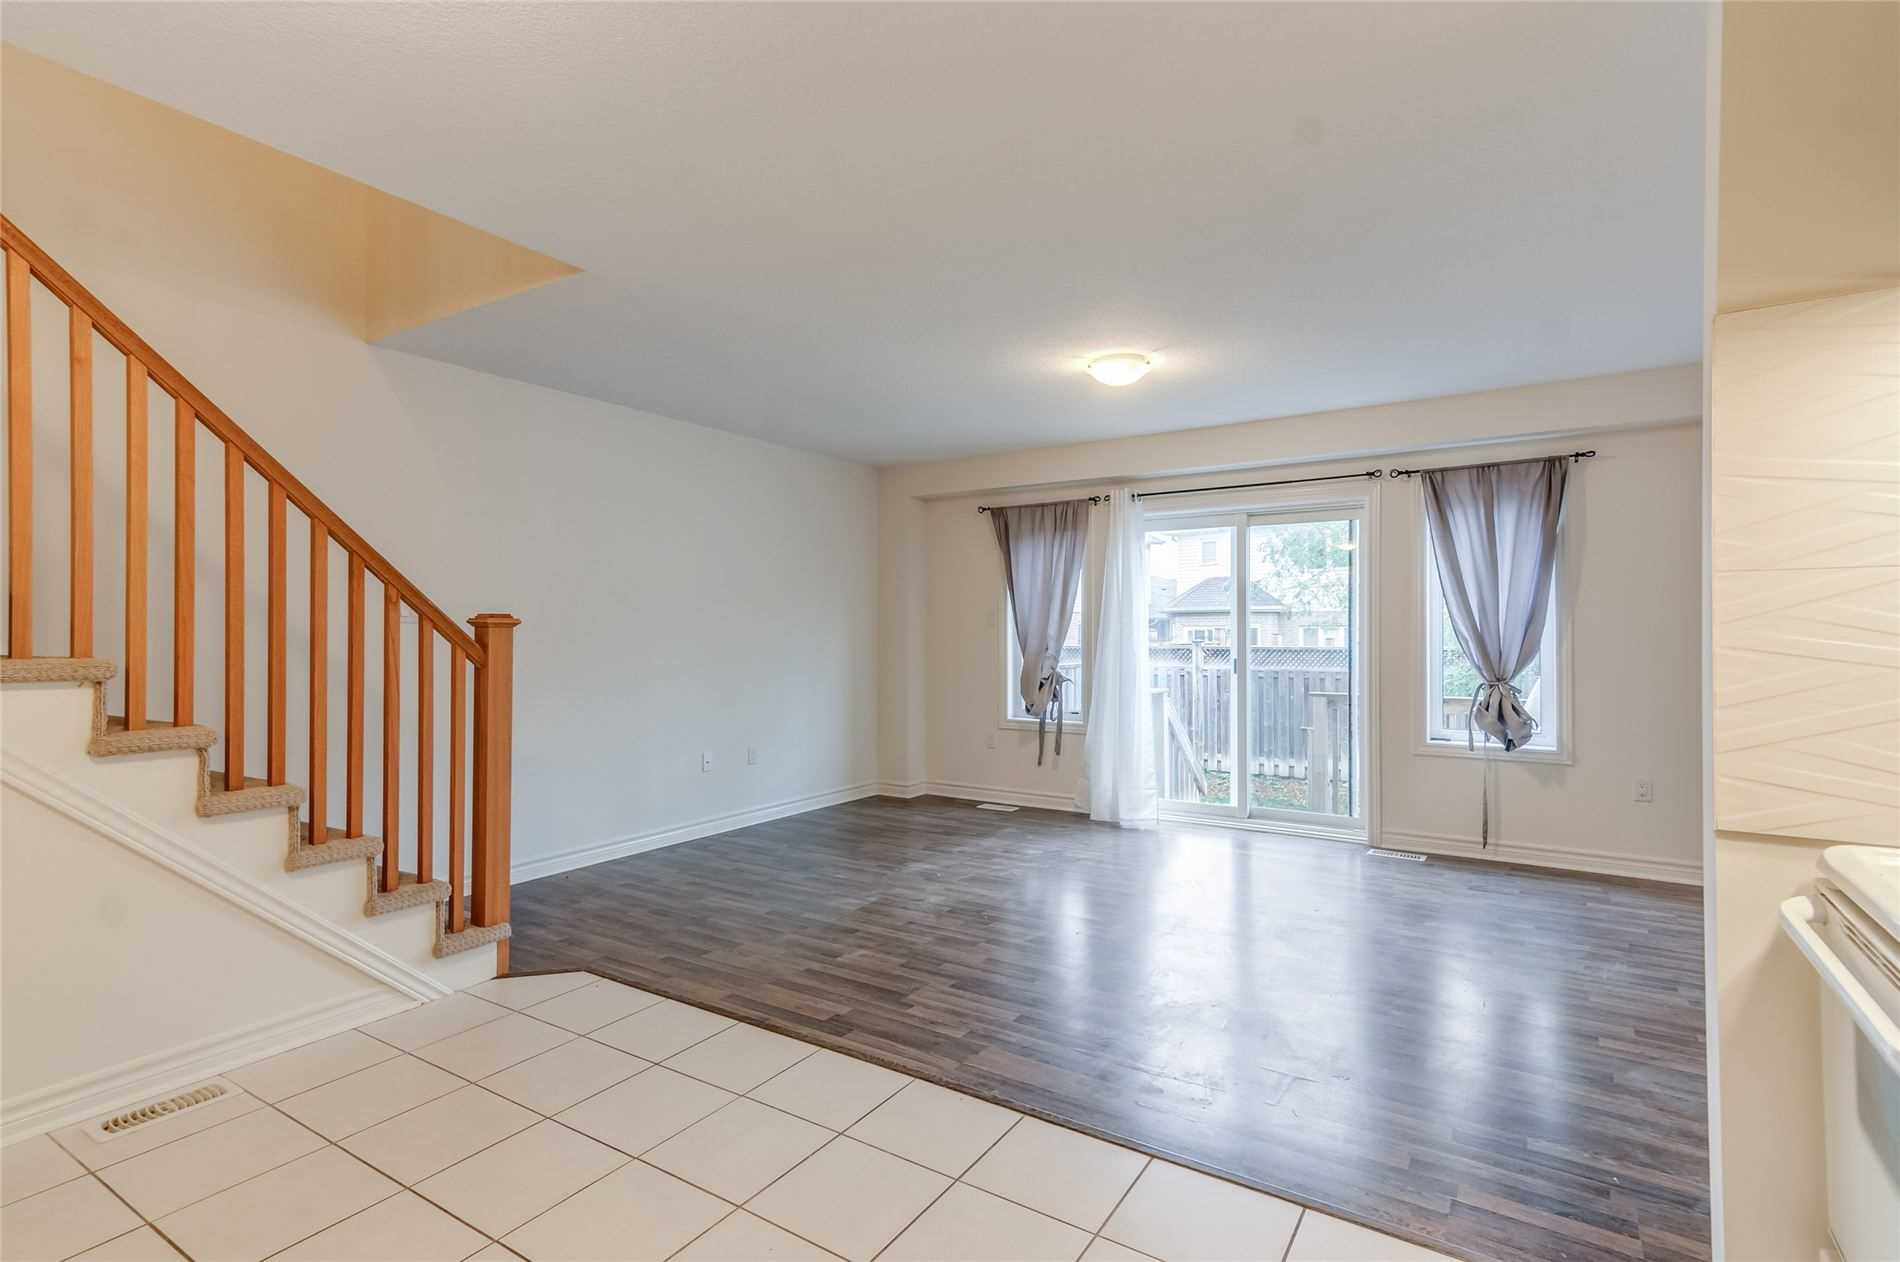 Condo Townhouse For Sale In Guelph , 3 Bedrooms Bedrooms, ,4 BathroomsBathrooms,Condo Townhouse,For Sale,Arlington